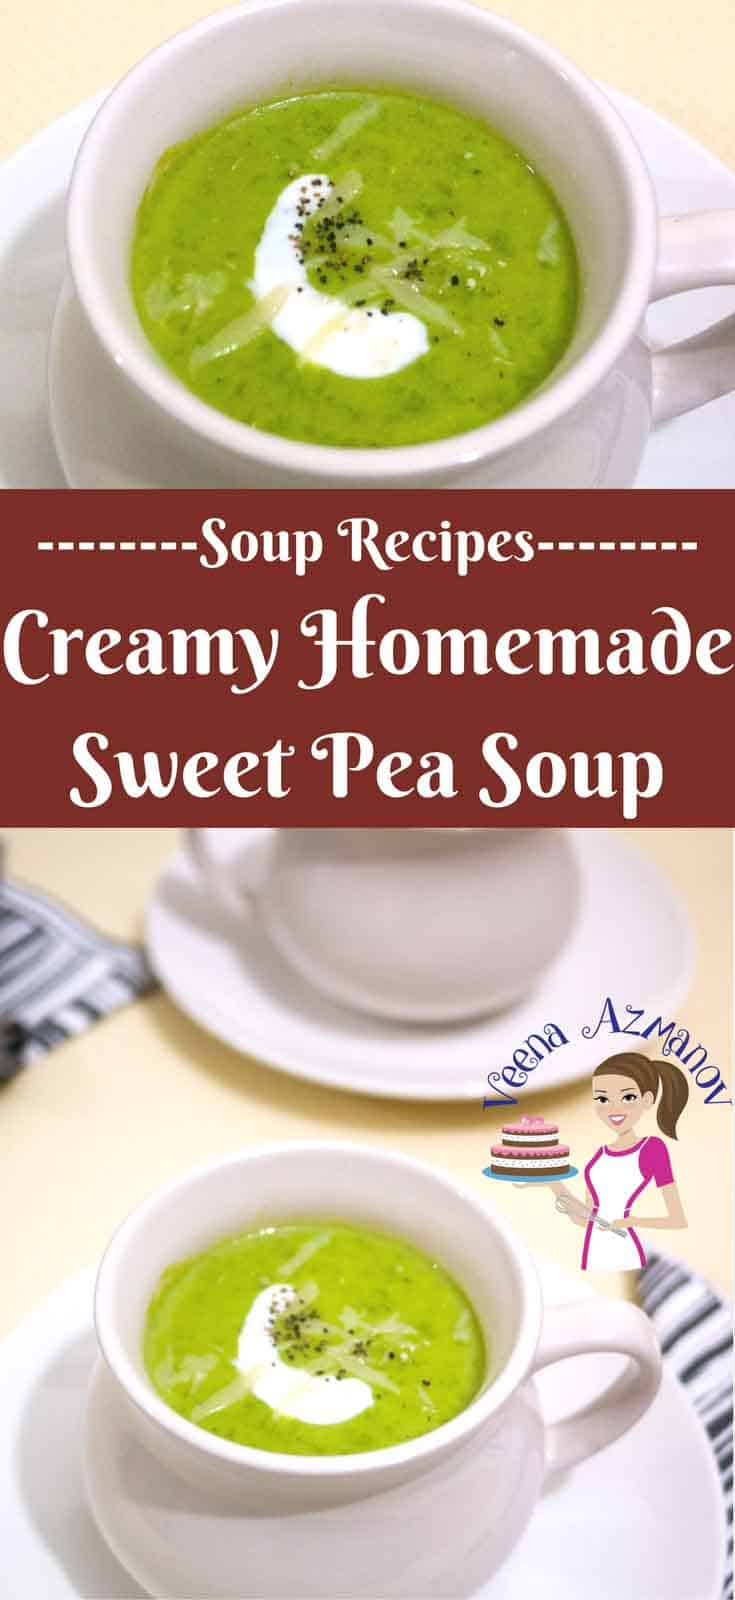 Nothing beats the warmth; the freshness and the creamy mouth feel from a simple homemade sweet pea soup on a cool rainy day in fall or winter. This is comfort food you will make more often then you planned.